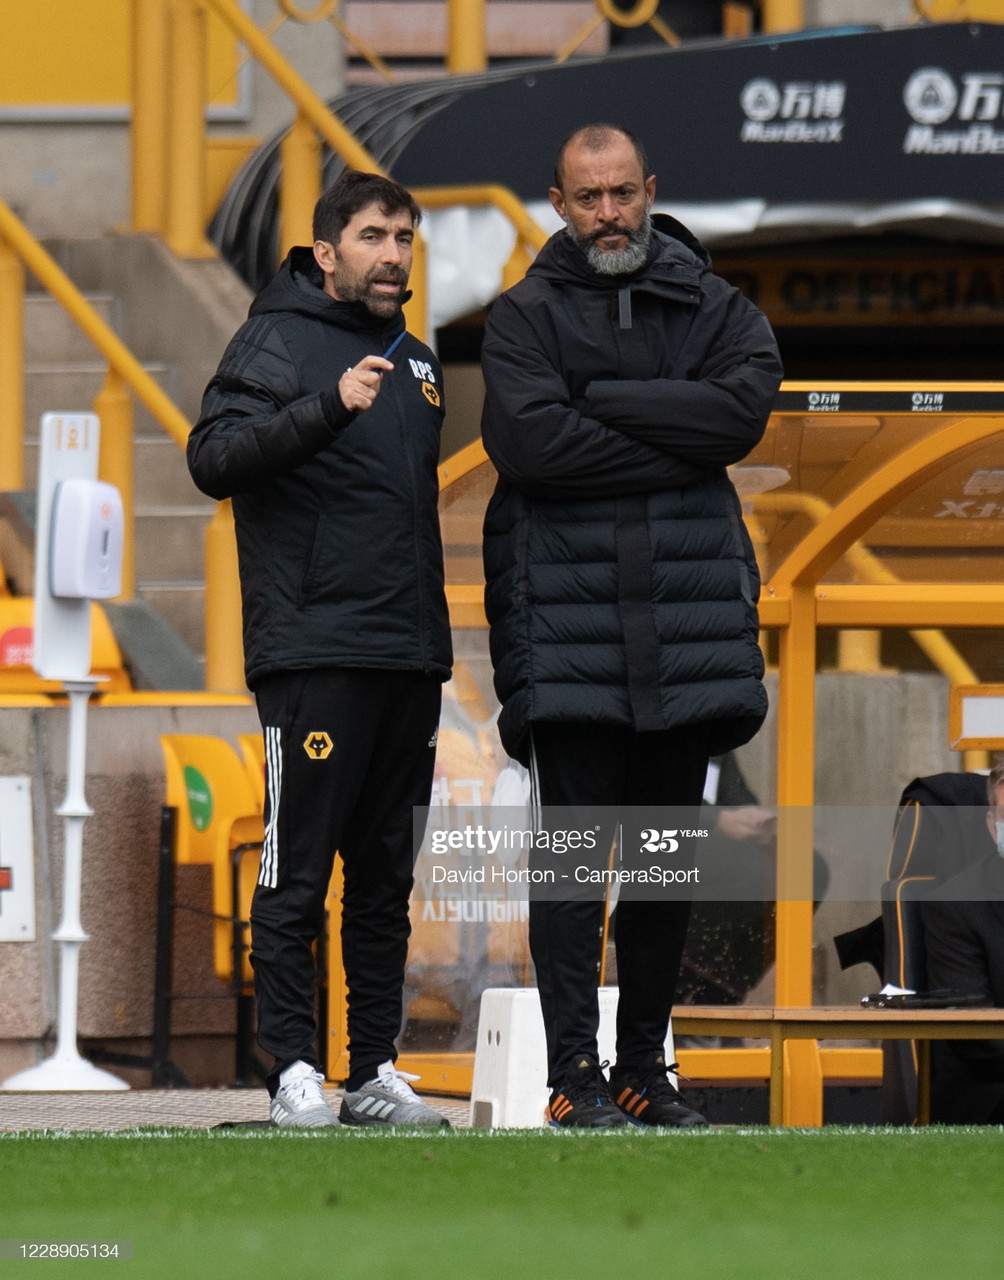 Wolves boss Nuno Espirito Santo and his assistant Rui Pedro Silva survey the action at Molineux during Wolves' defeat of Fulham on October 4 | Photo by David Horton - CameraSport/Getty Images.